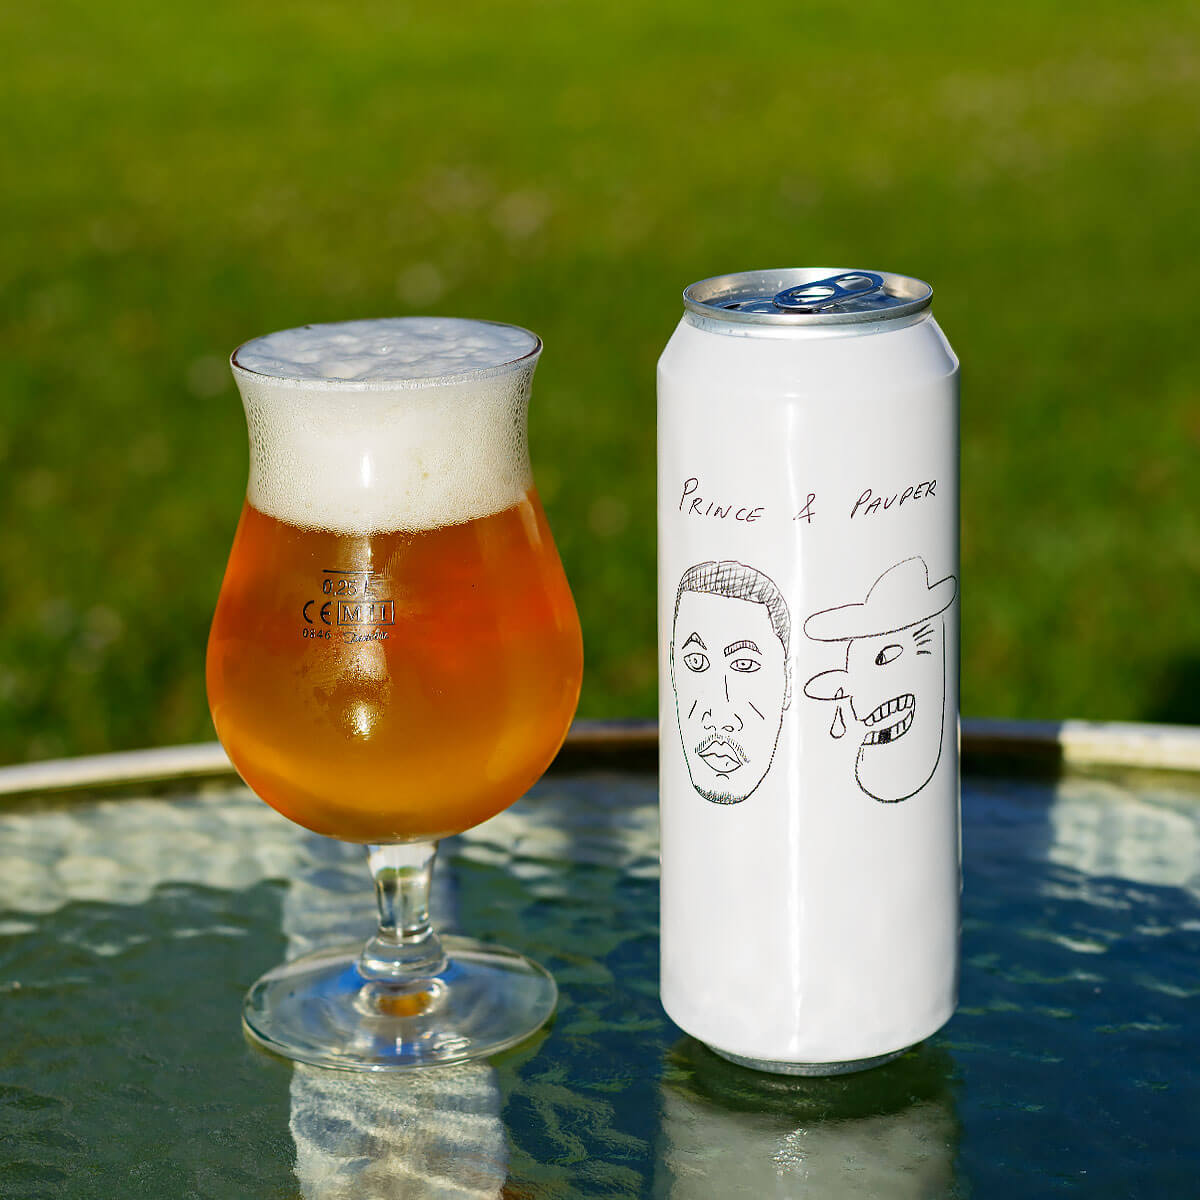 Prince & Pauper, a Belgian-style Saison by Mikkeller ApS and Omnipollo